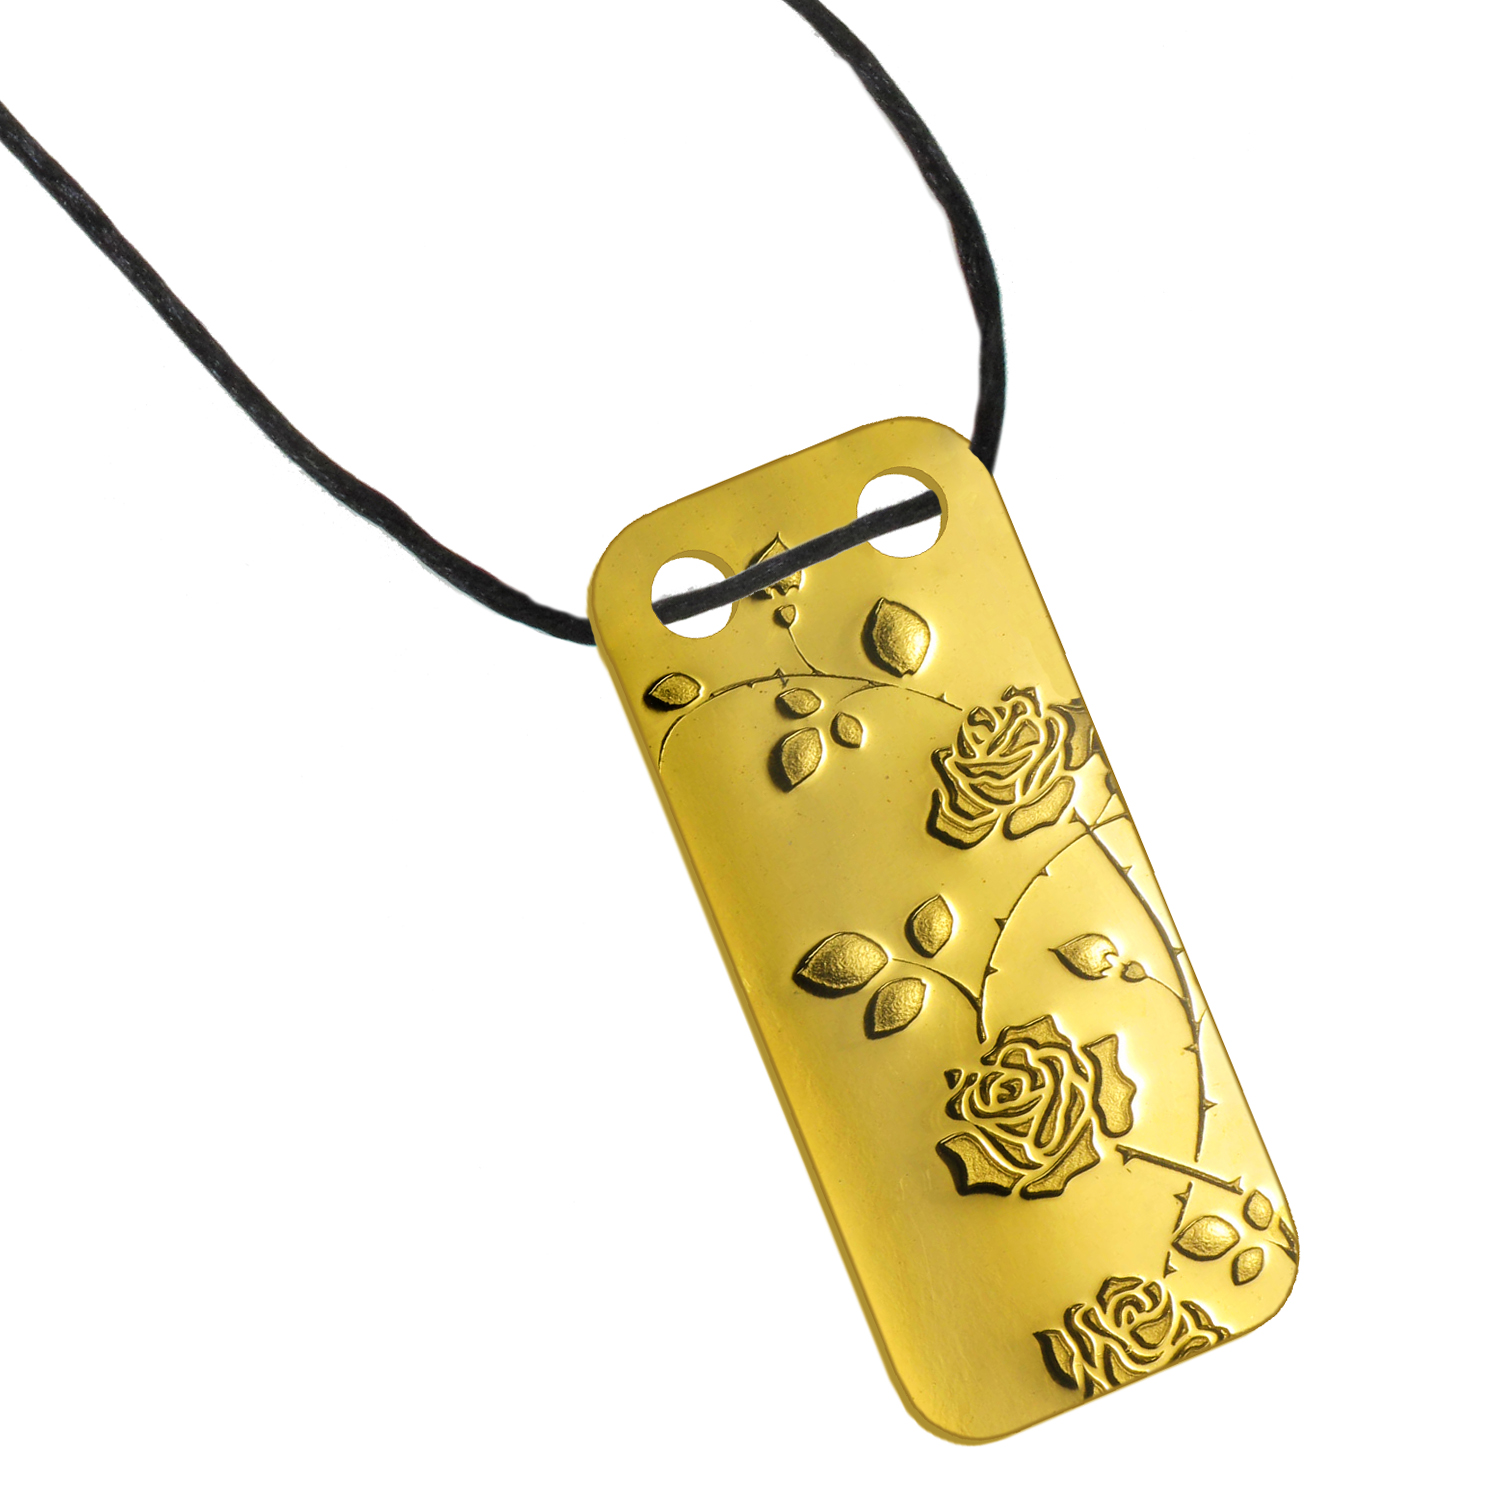 1/5 oz Gold Pendant - Pamp Suisse Ingot (Rambling Rose, Proof)